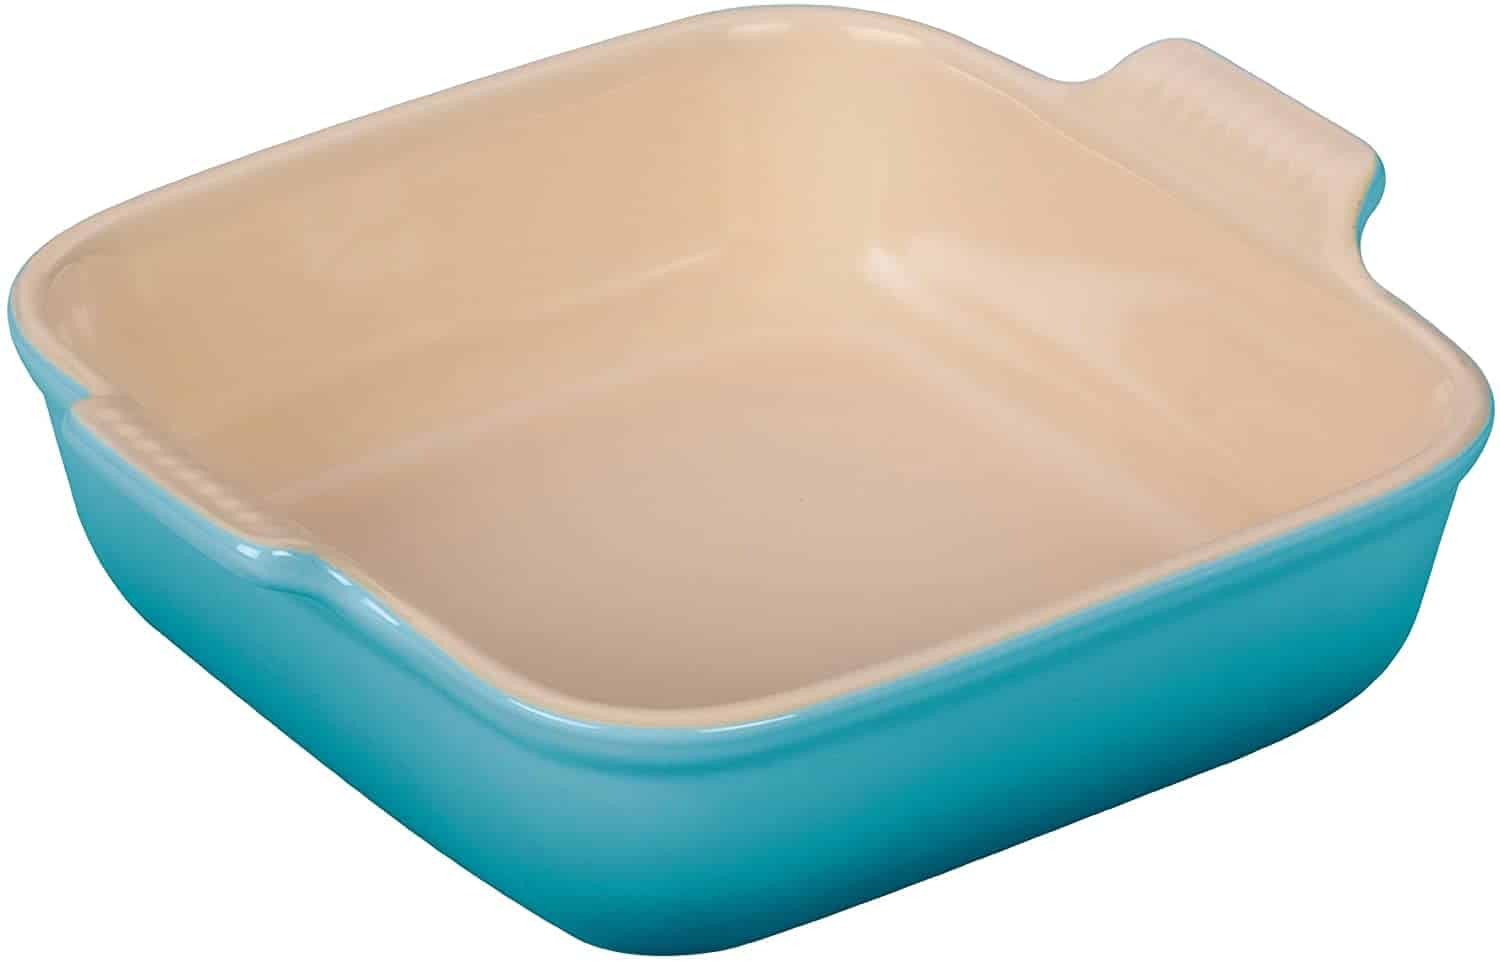 Le Creuset 8-inch Baking Dish